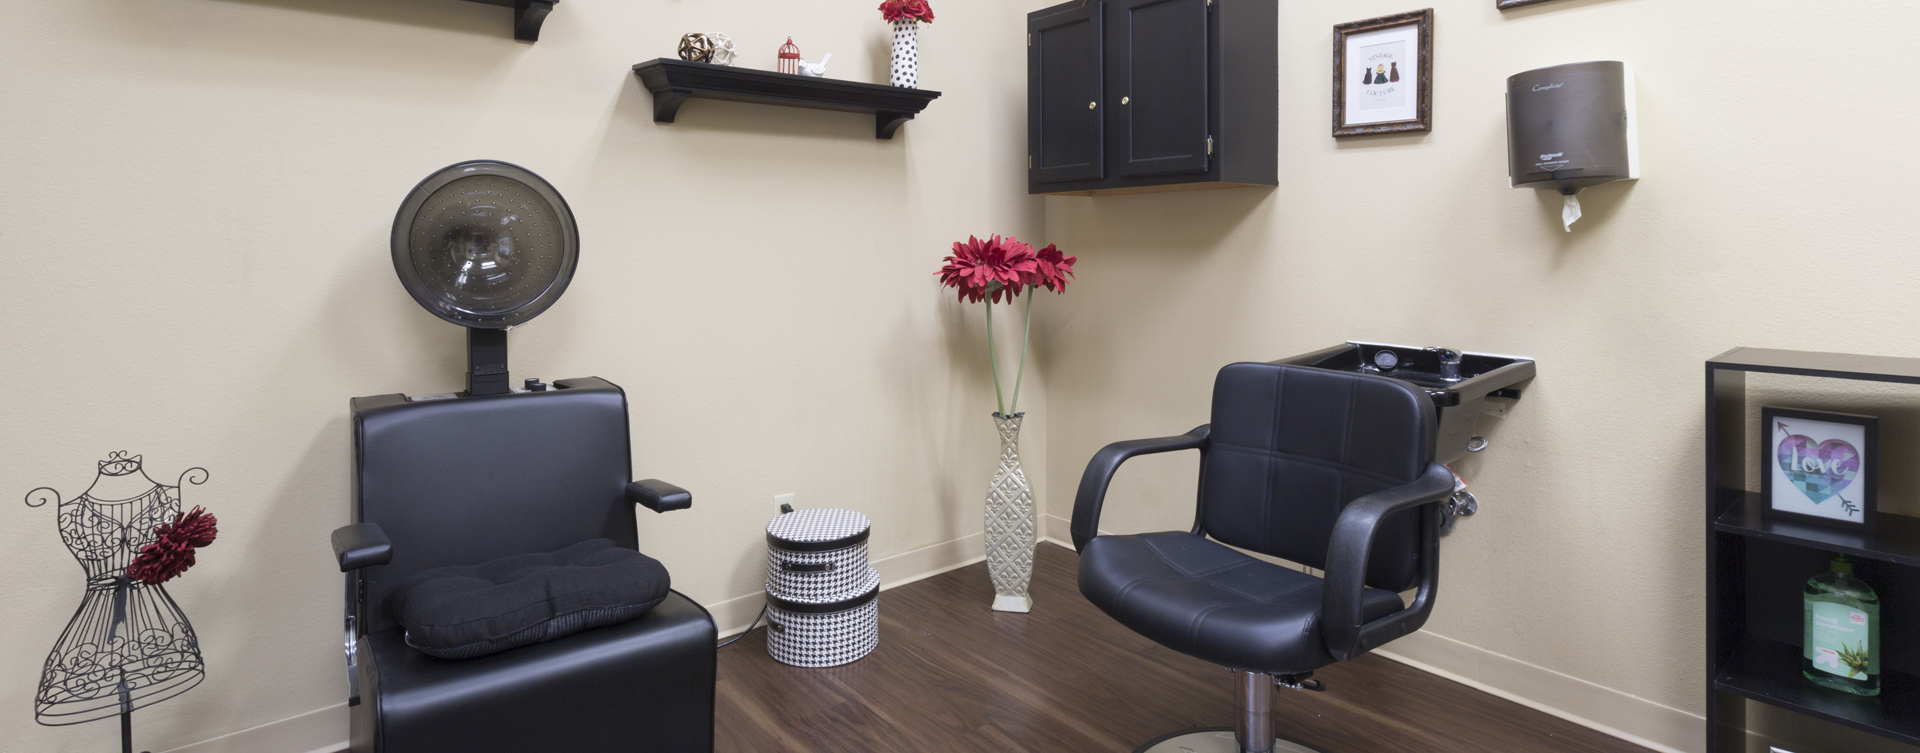 Receive personalized, at-home treatment from our stylist in the salon at Bickford of Omaha - Hickory